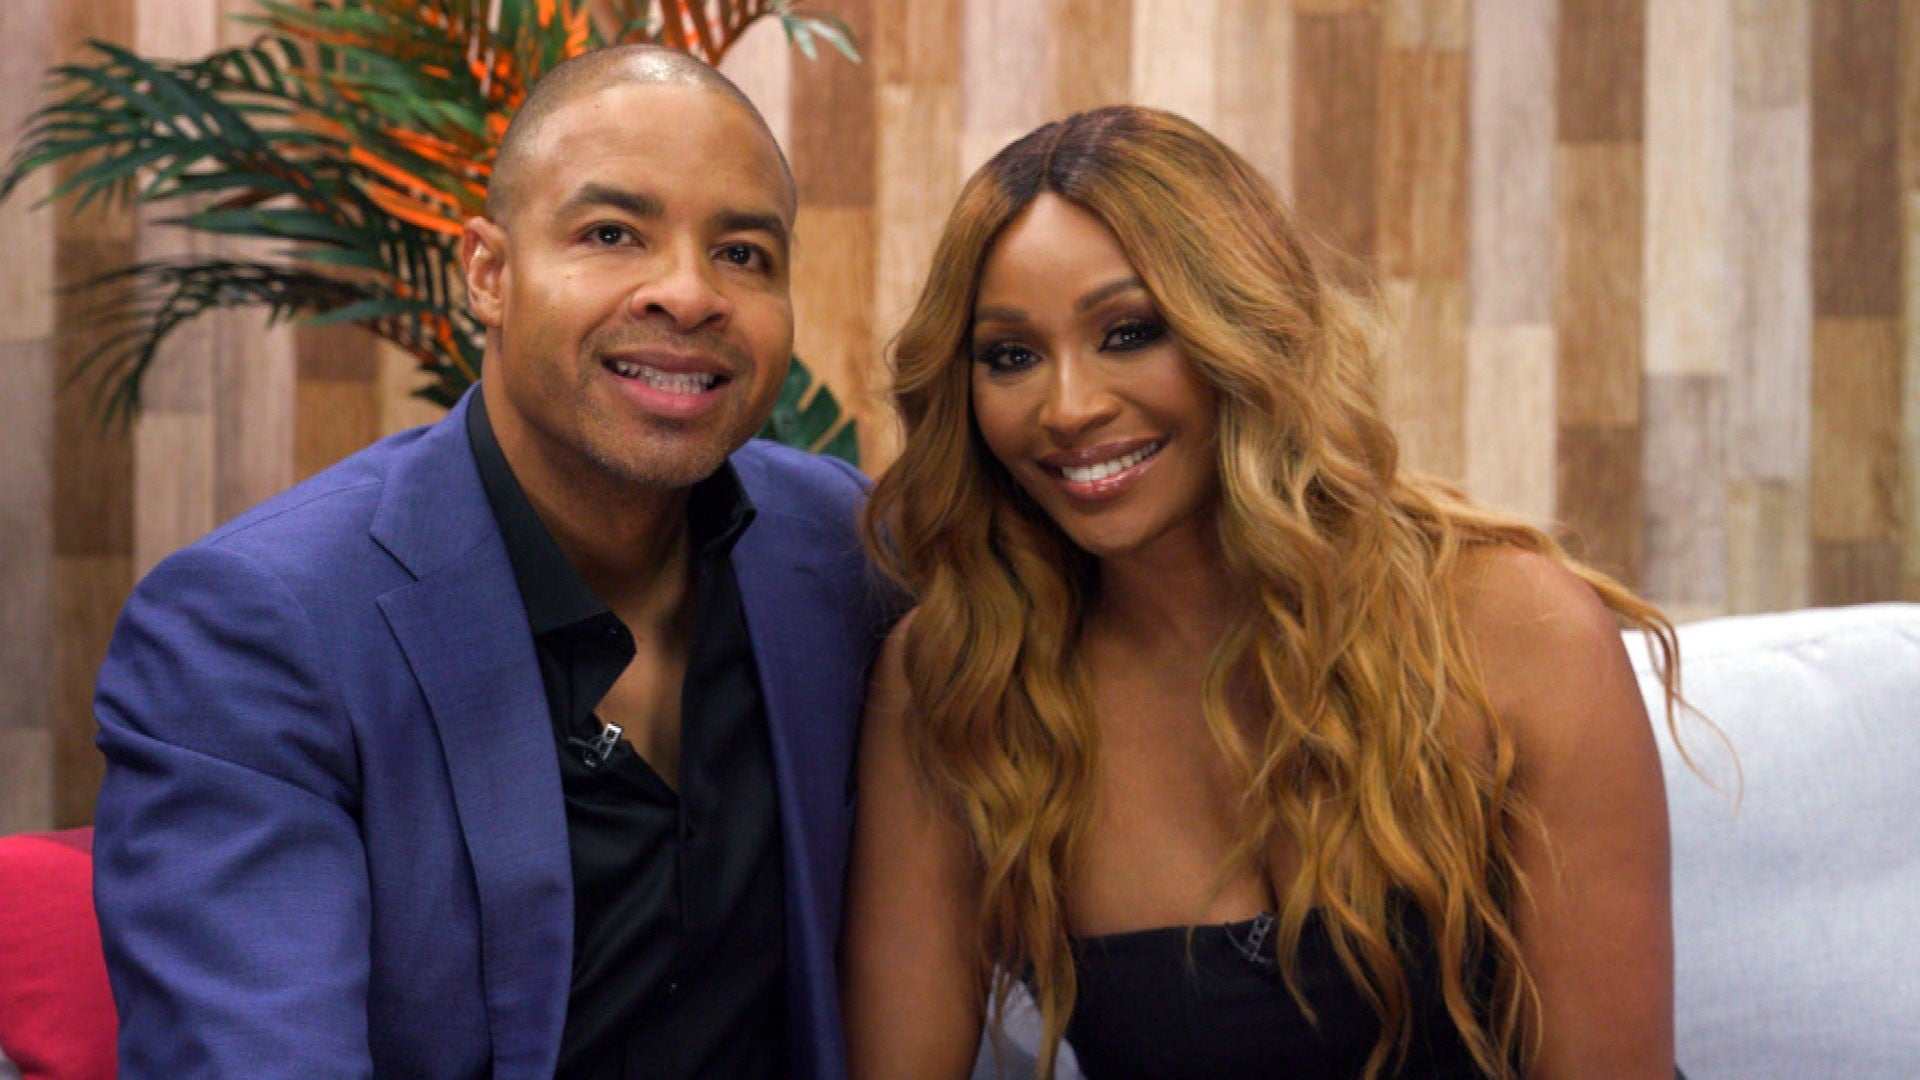 Cynthia Bailey Drops An Optimistic Message About The Future – Check It Out Here